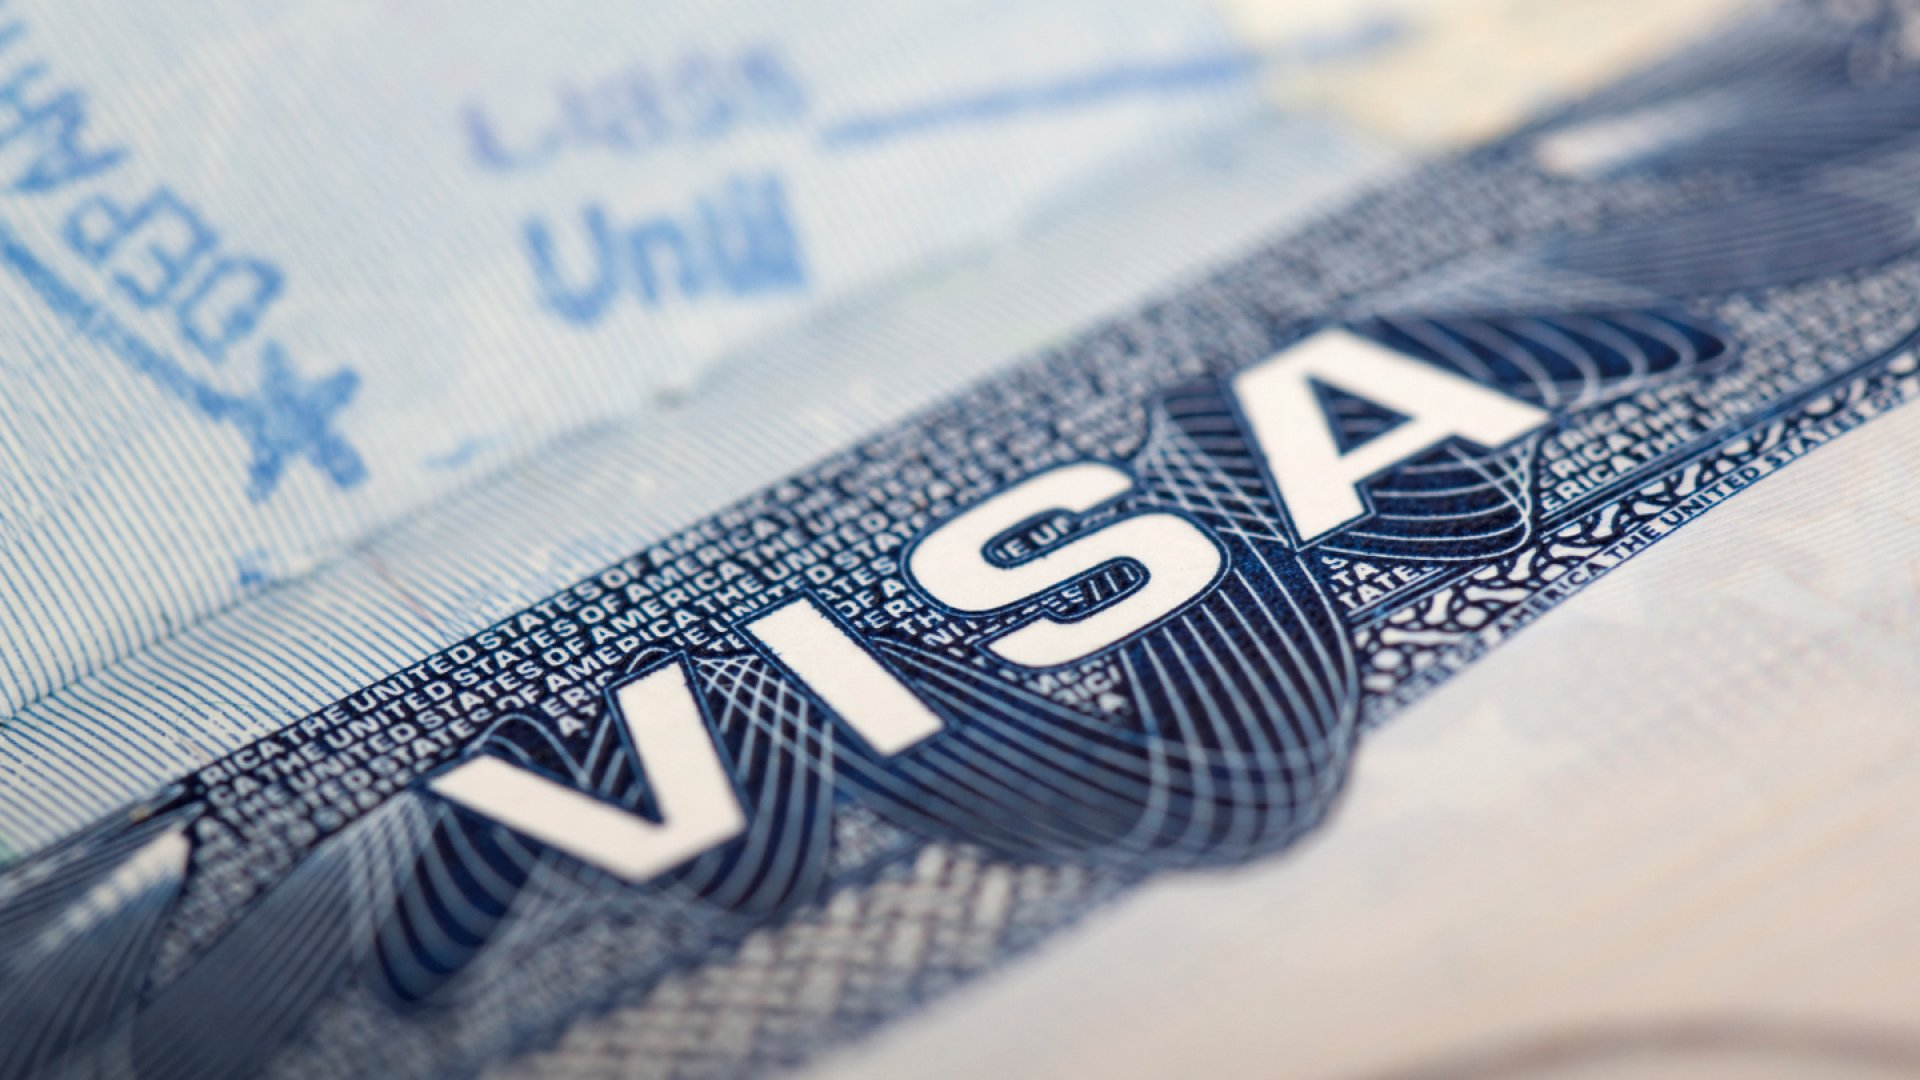 3 Burning Questions About Startup Visas